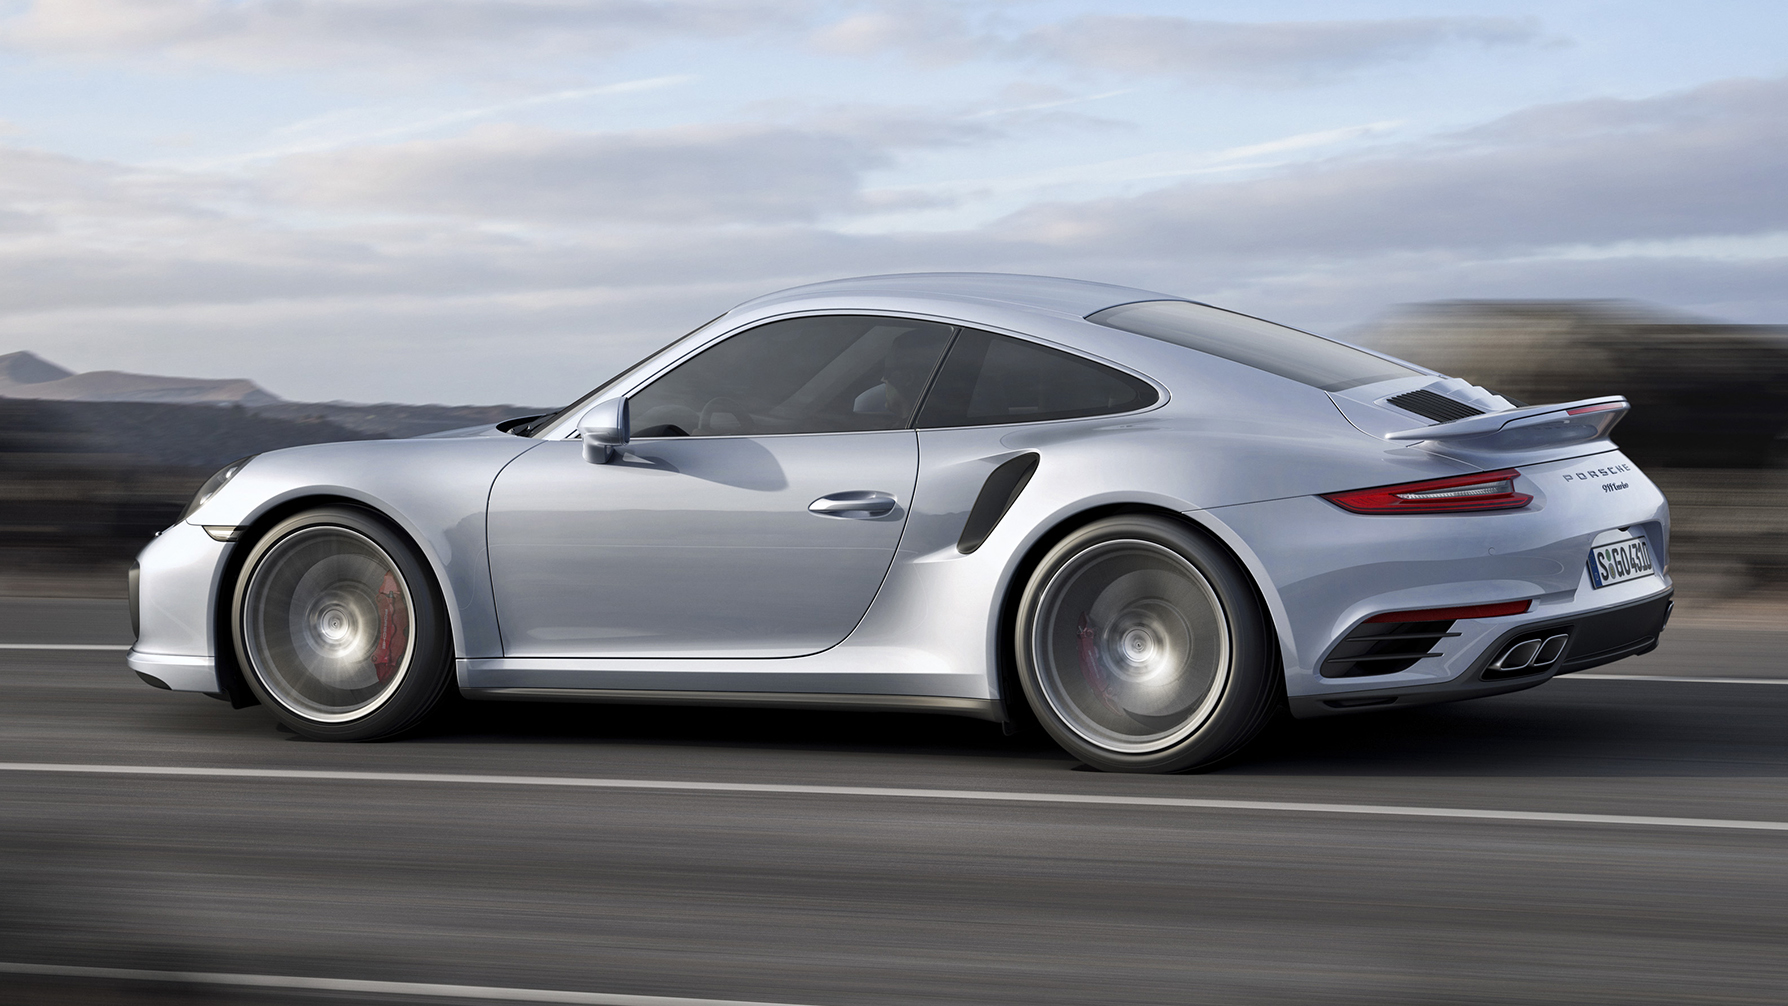 Video: First look at the 2017 Porsche 911 Turbo